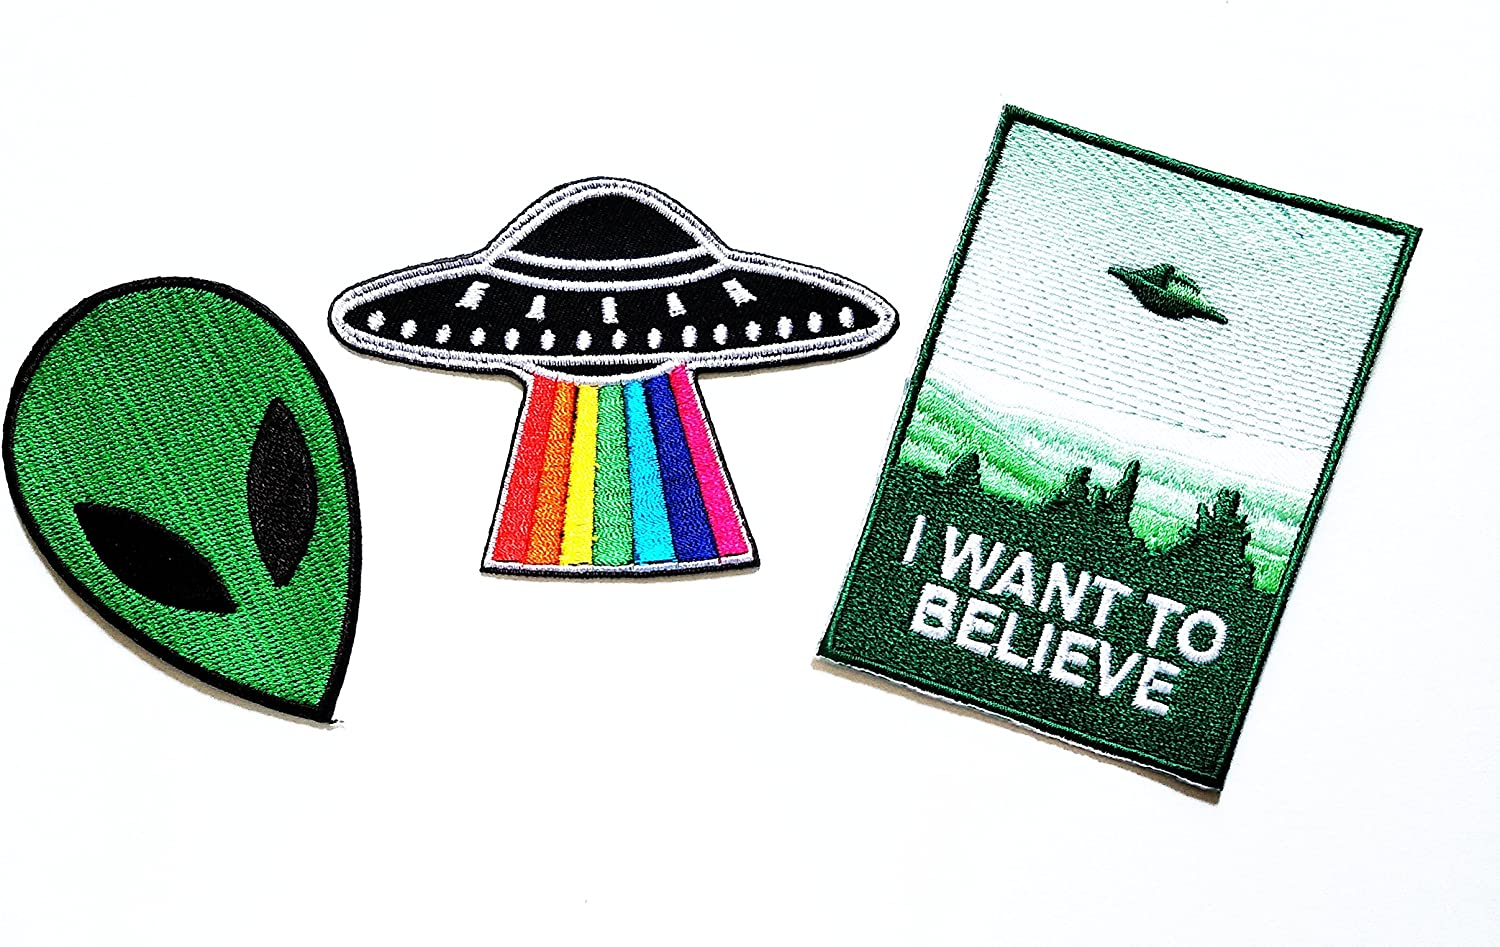 Nipitshop Patches Set of 3 I Want to Believe Cute Pretty Green Alien Fantasy Spacecraft Rainbow Patch for Clothes Backpacks T-Shirt Jeans Skirt Vests Scarf Hat Bag Iron On Appliques Embroidered